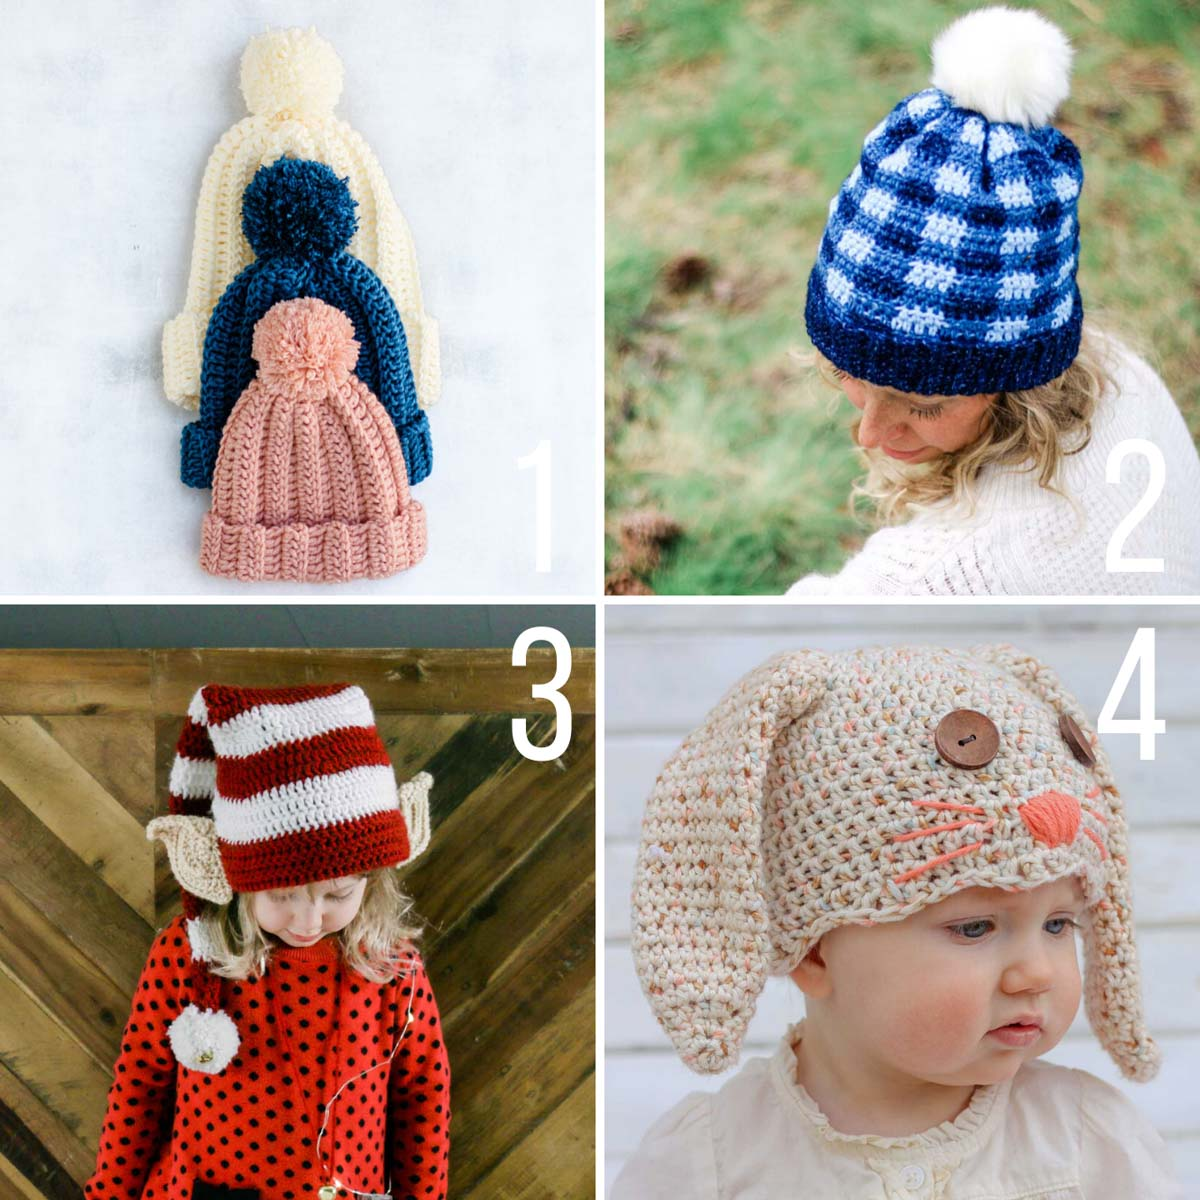 Four free crochet hat patterns for babies, kids and adults.